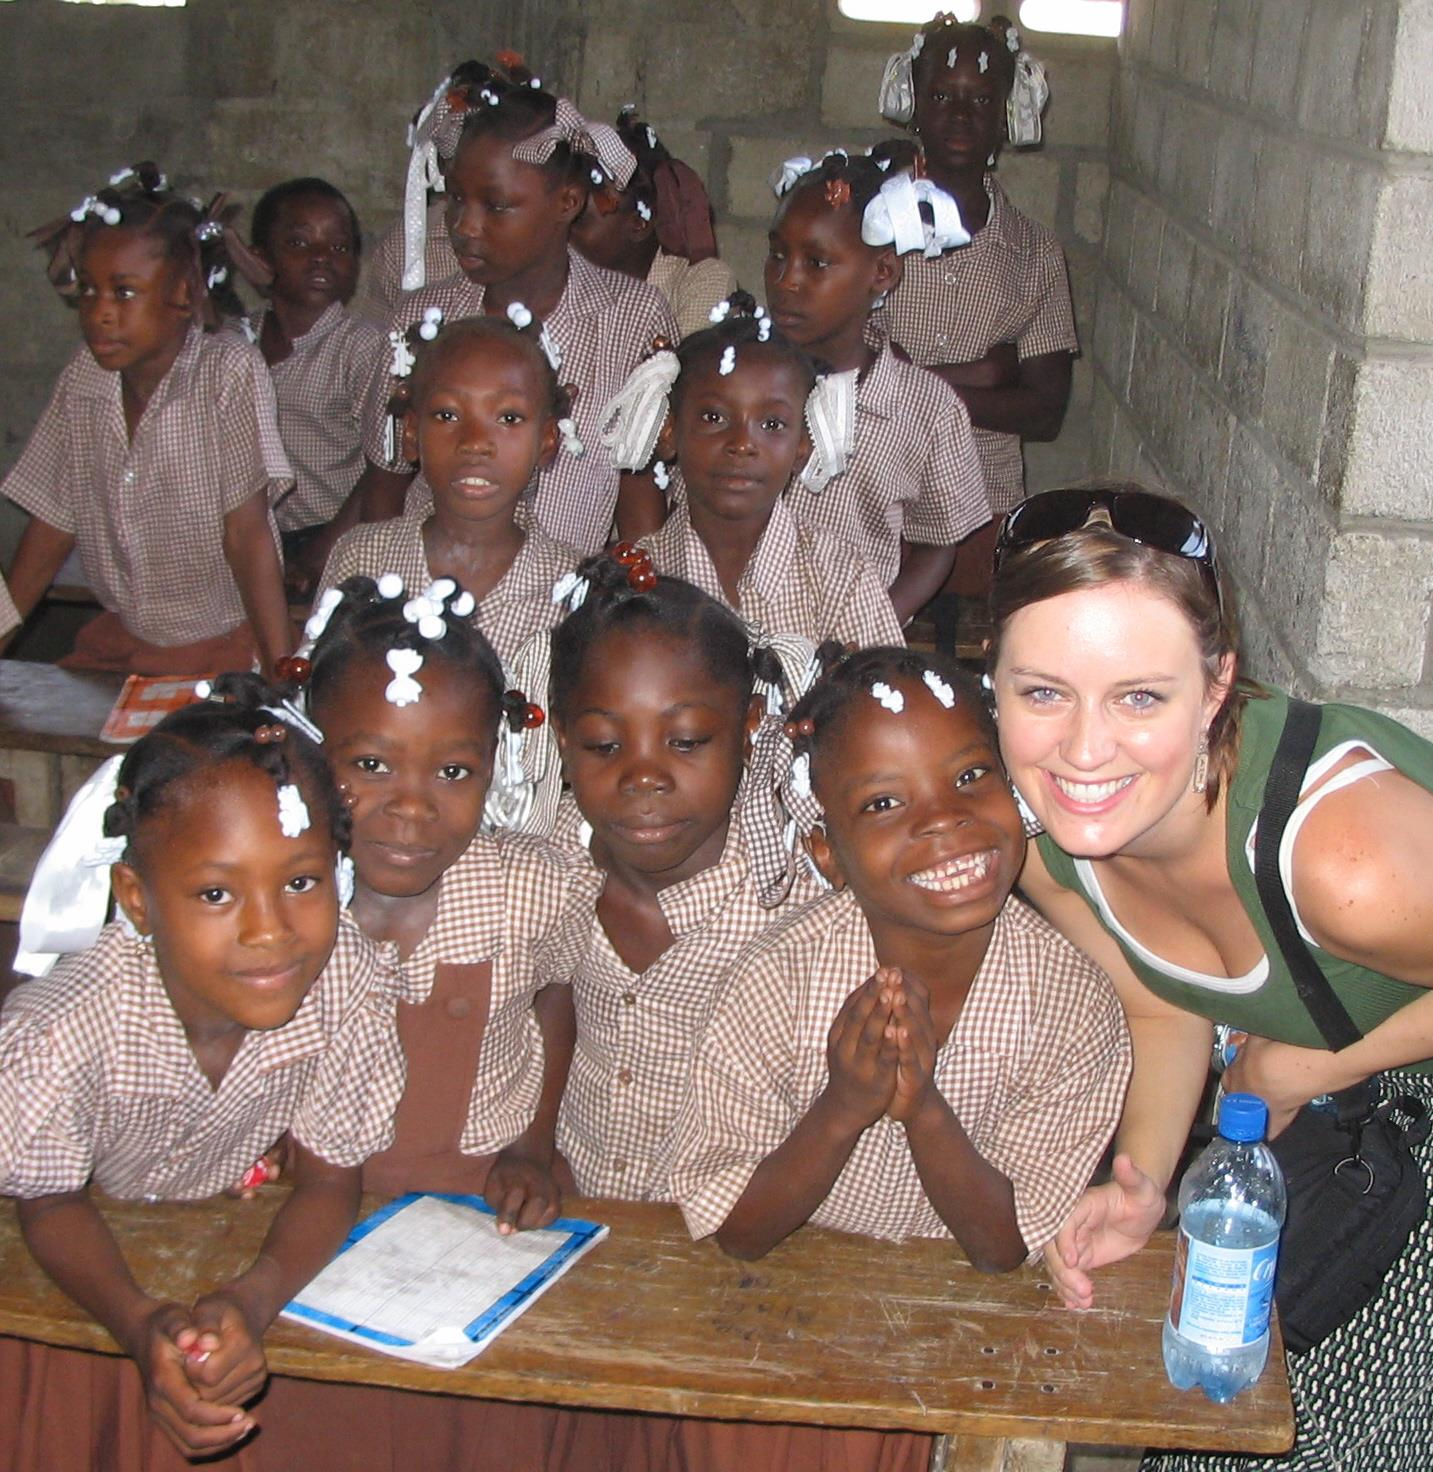 Brown at an American orphanage on the coast of Haiti